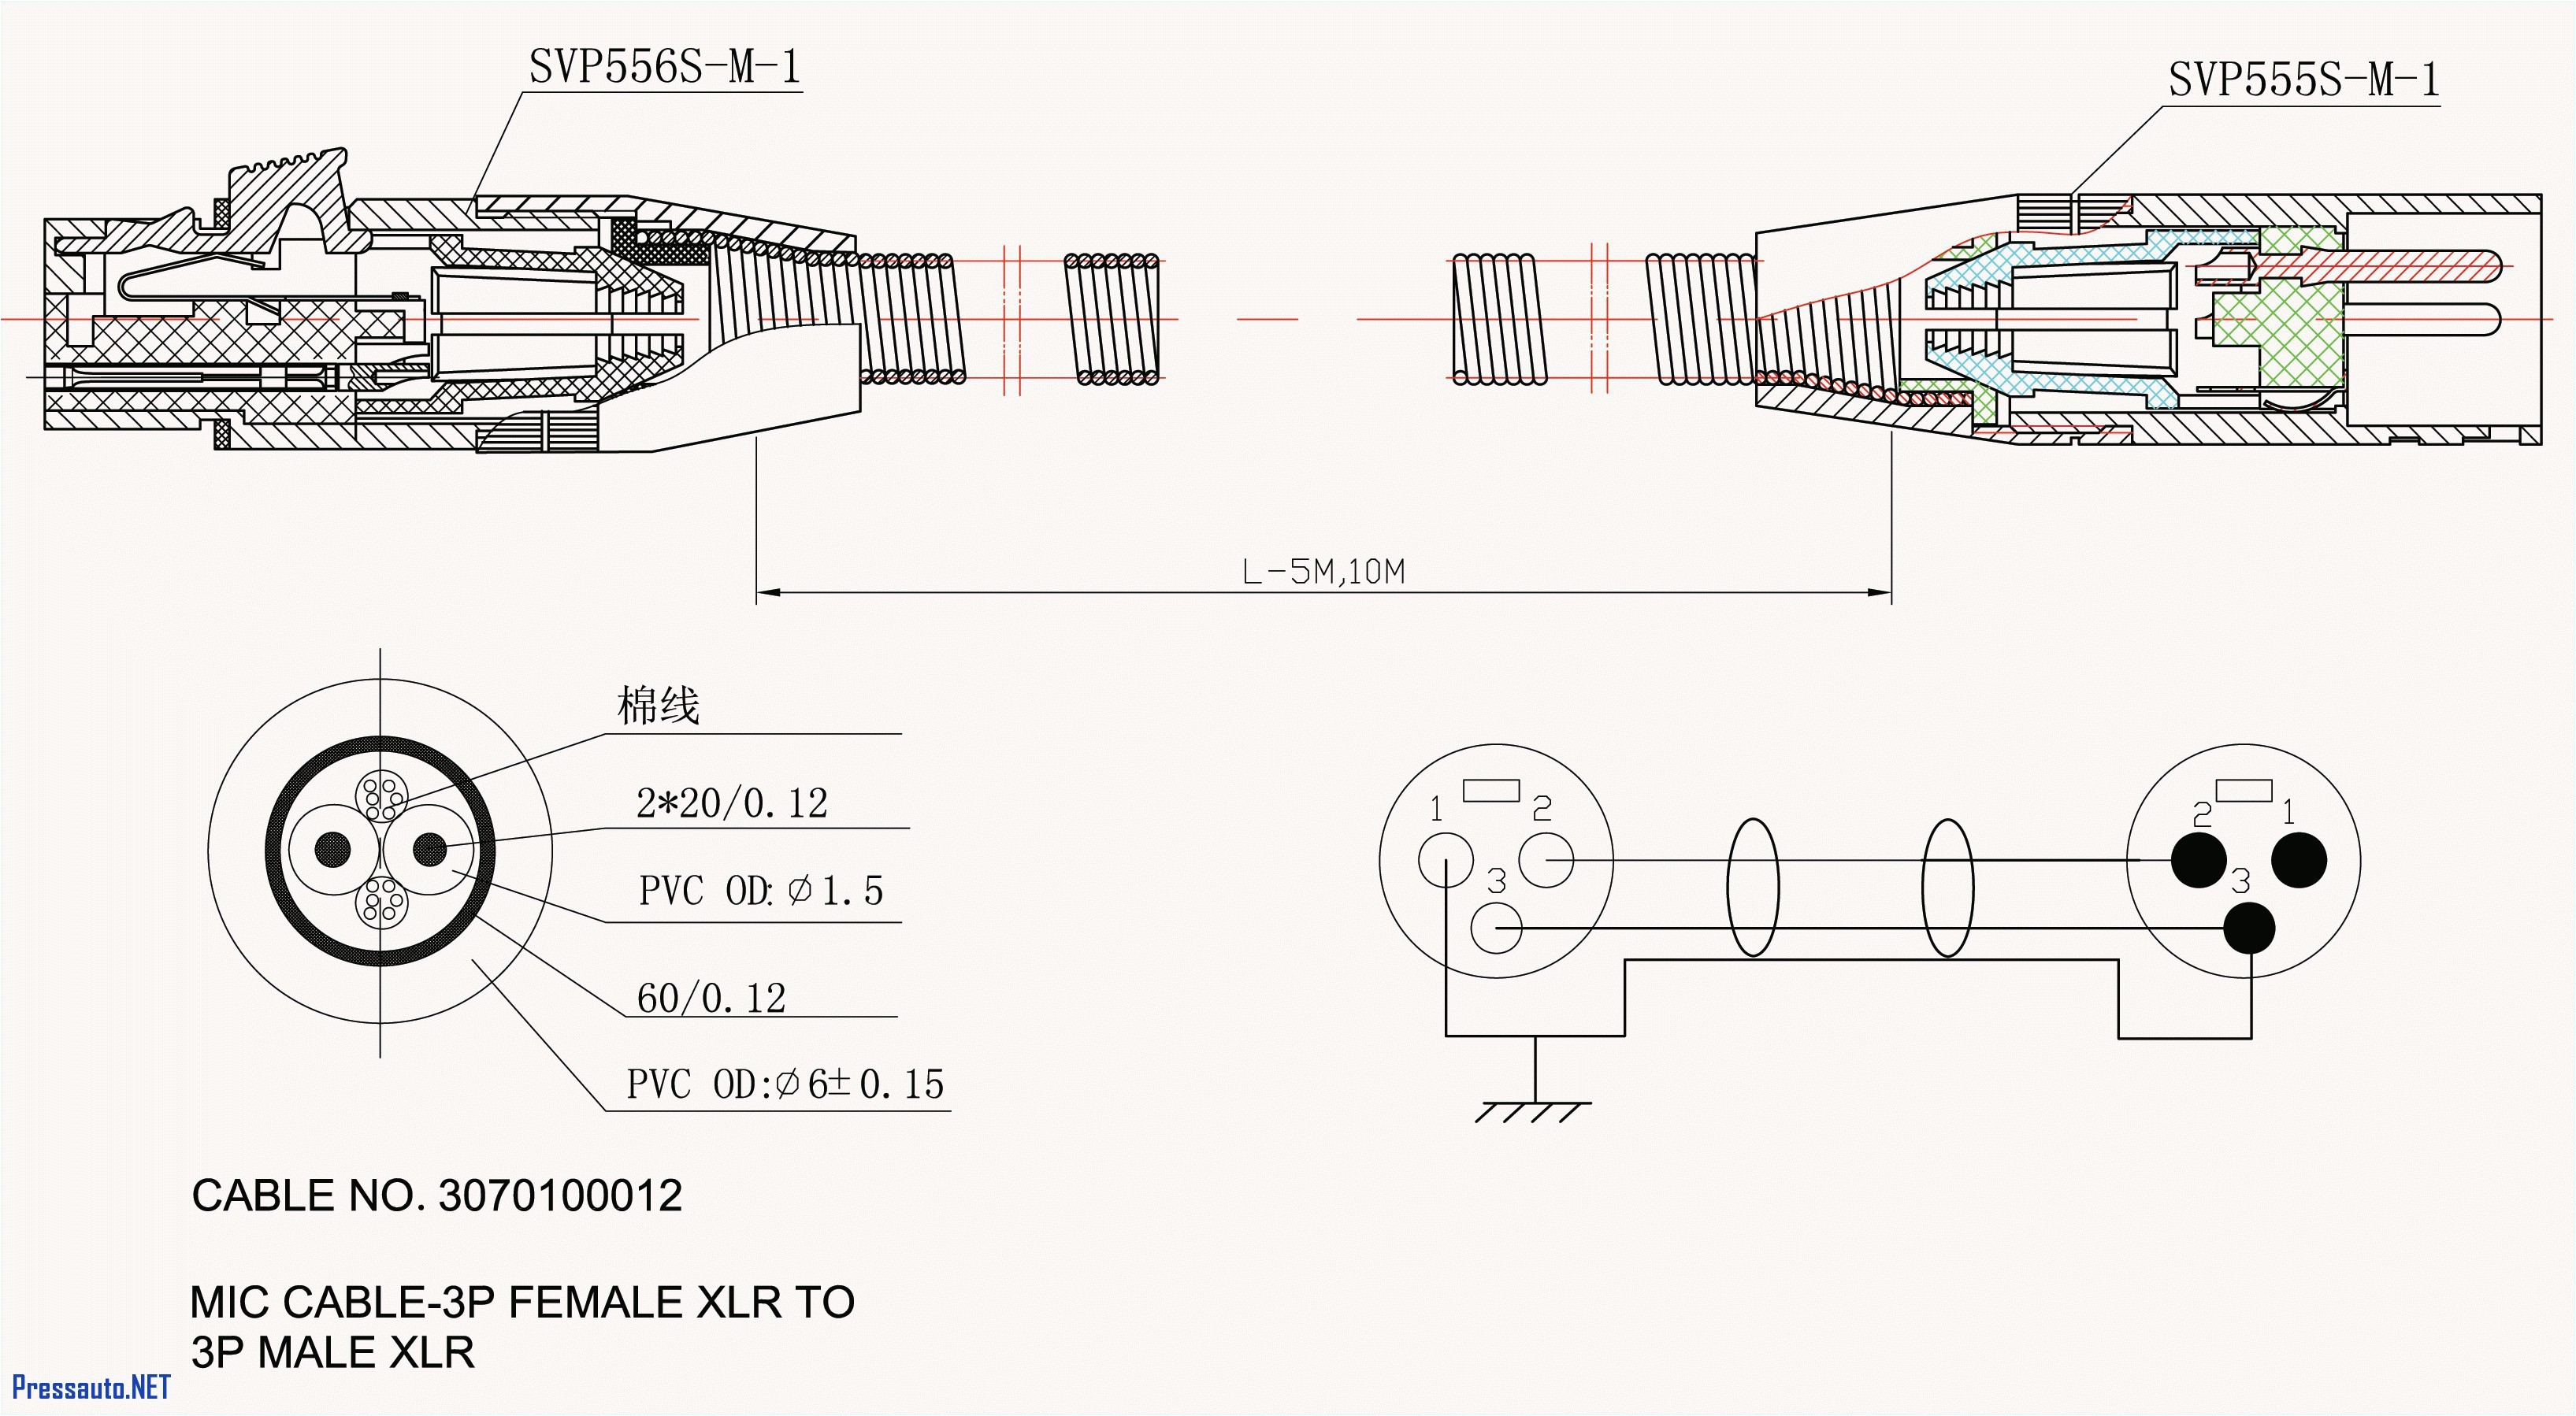 gm ls3 crate engine wiring diagram reference ad244 alternator wiring diagram joescablecar of gm ls3 crate